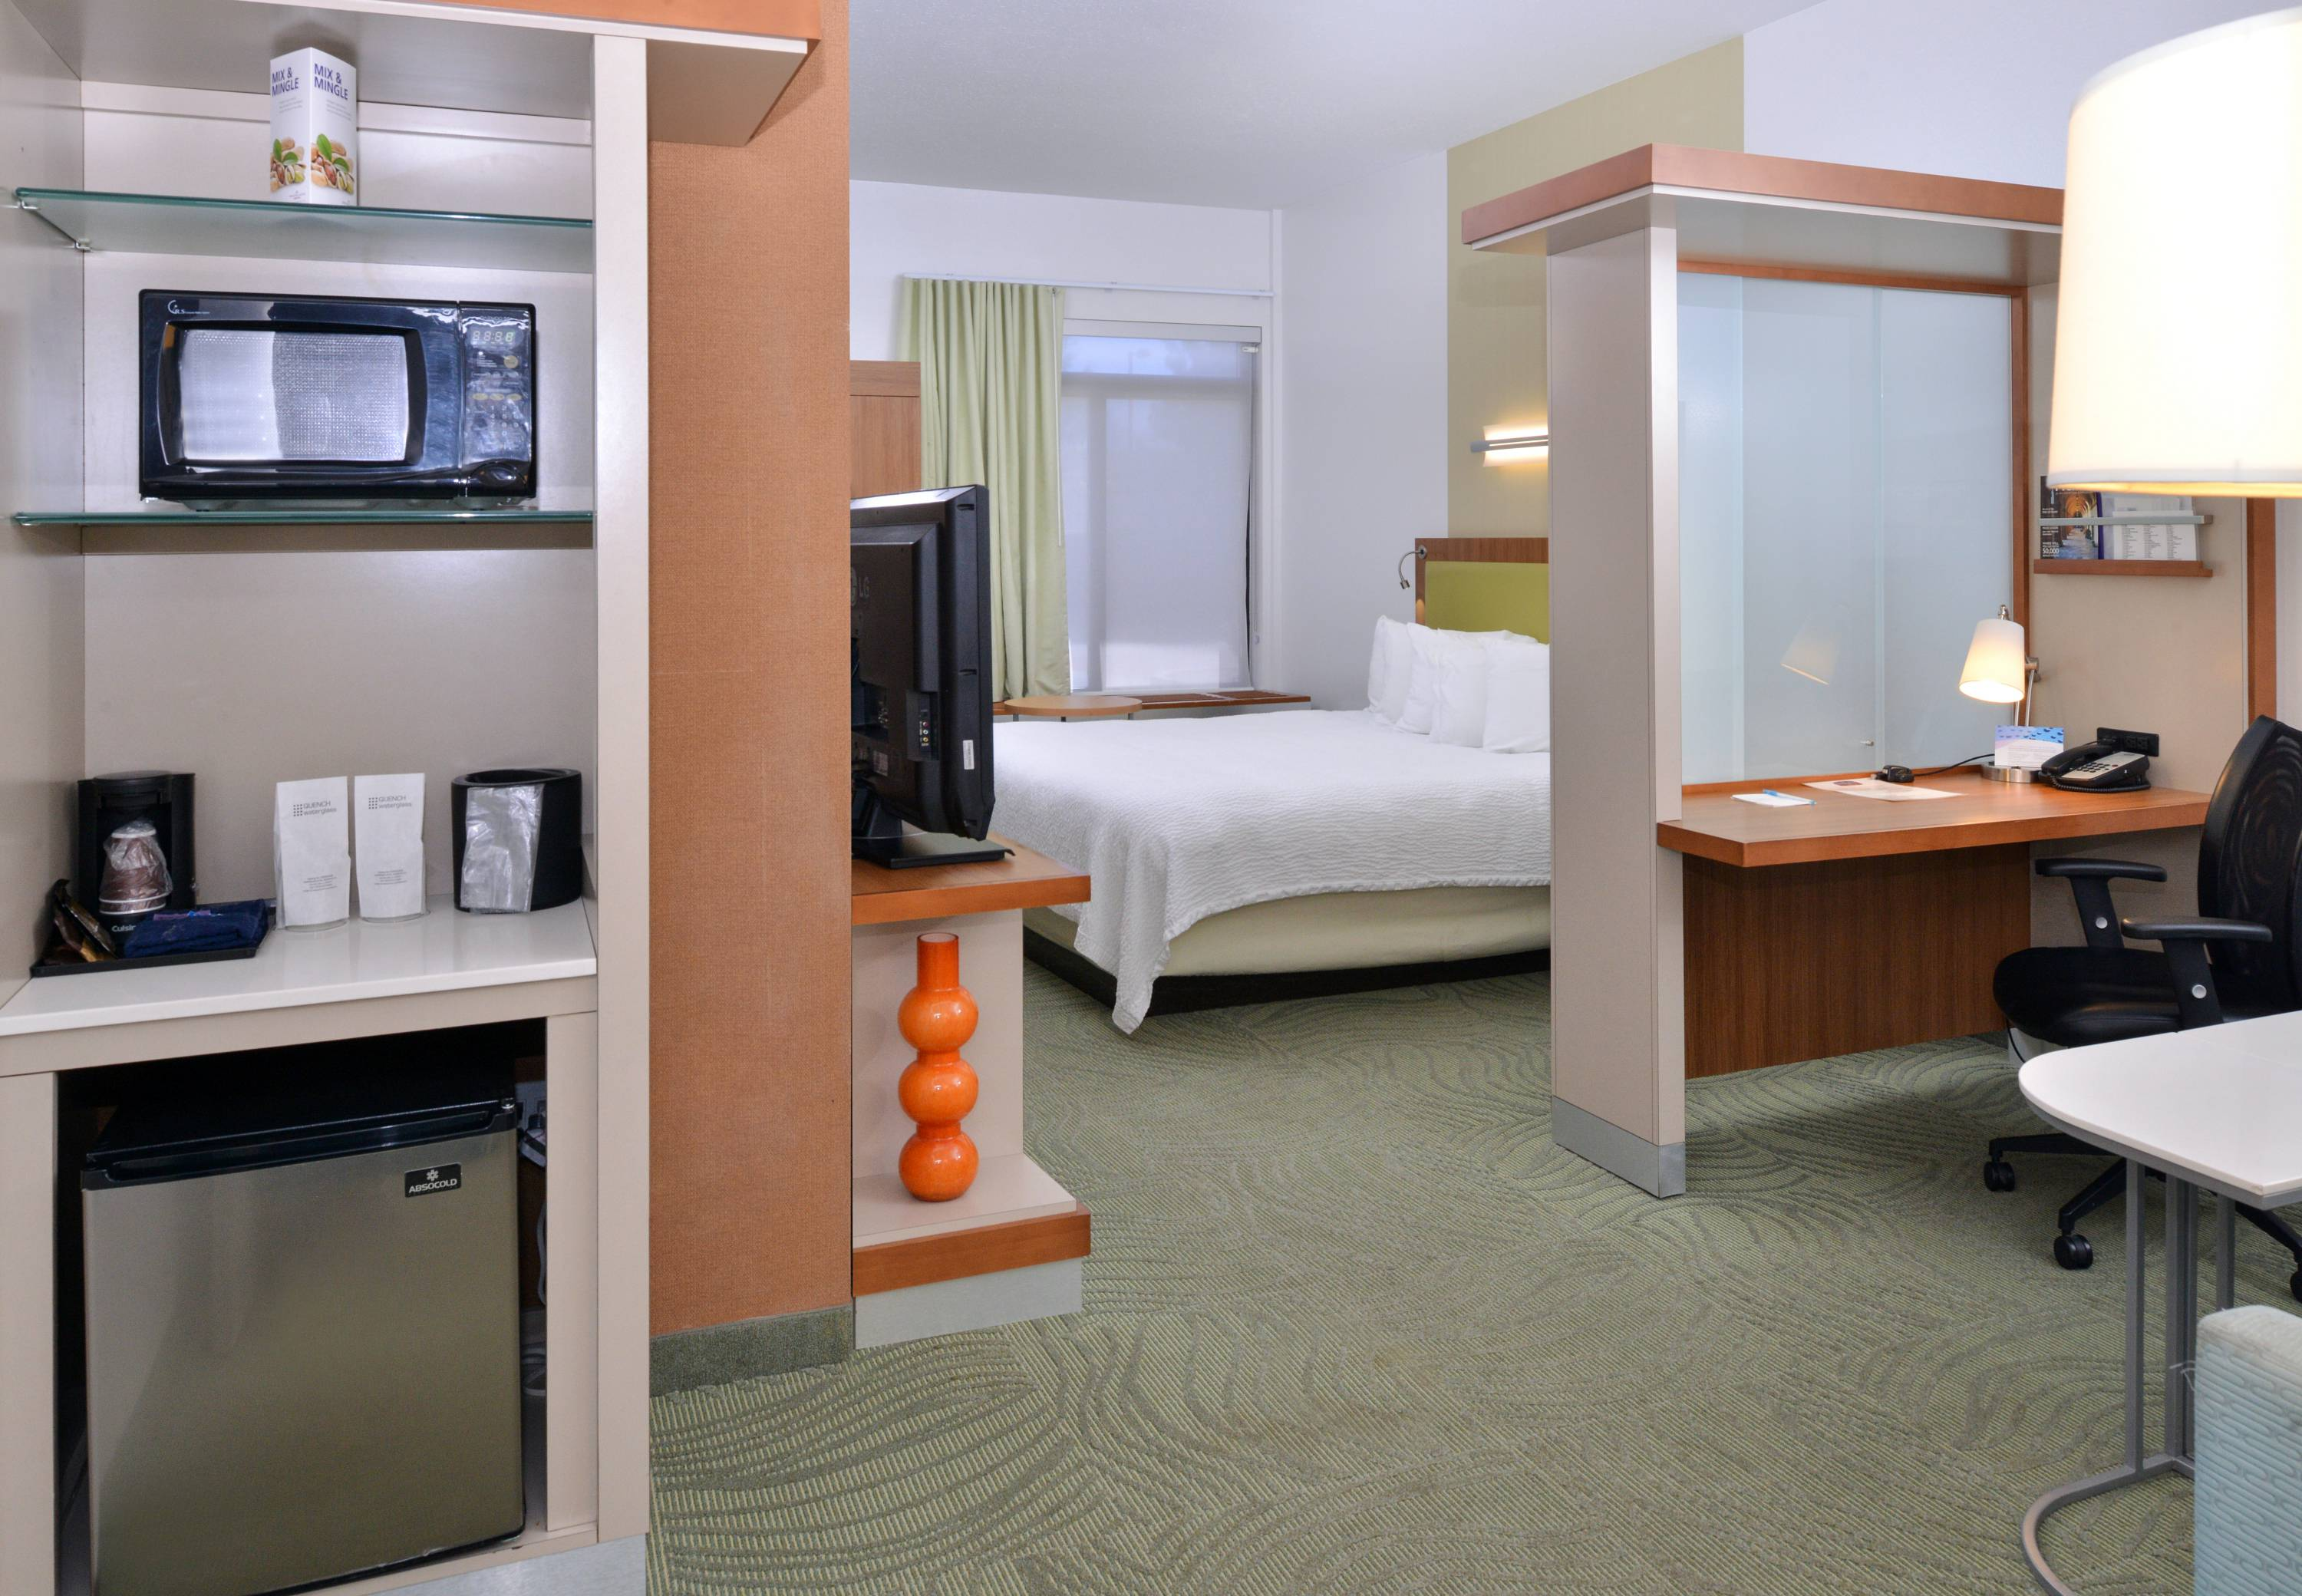 SpringHill Suites by Marriott Kingman Route 66 image 2